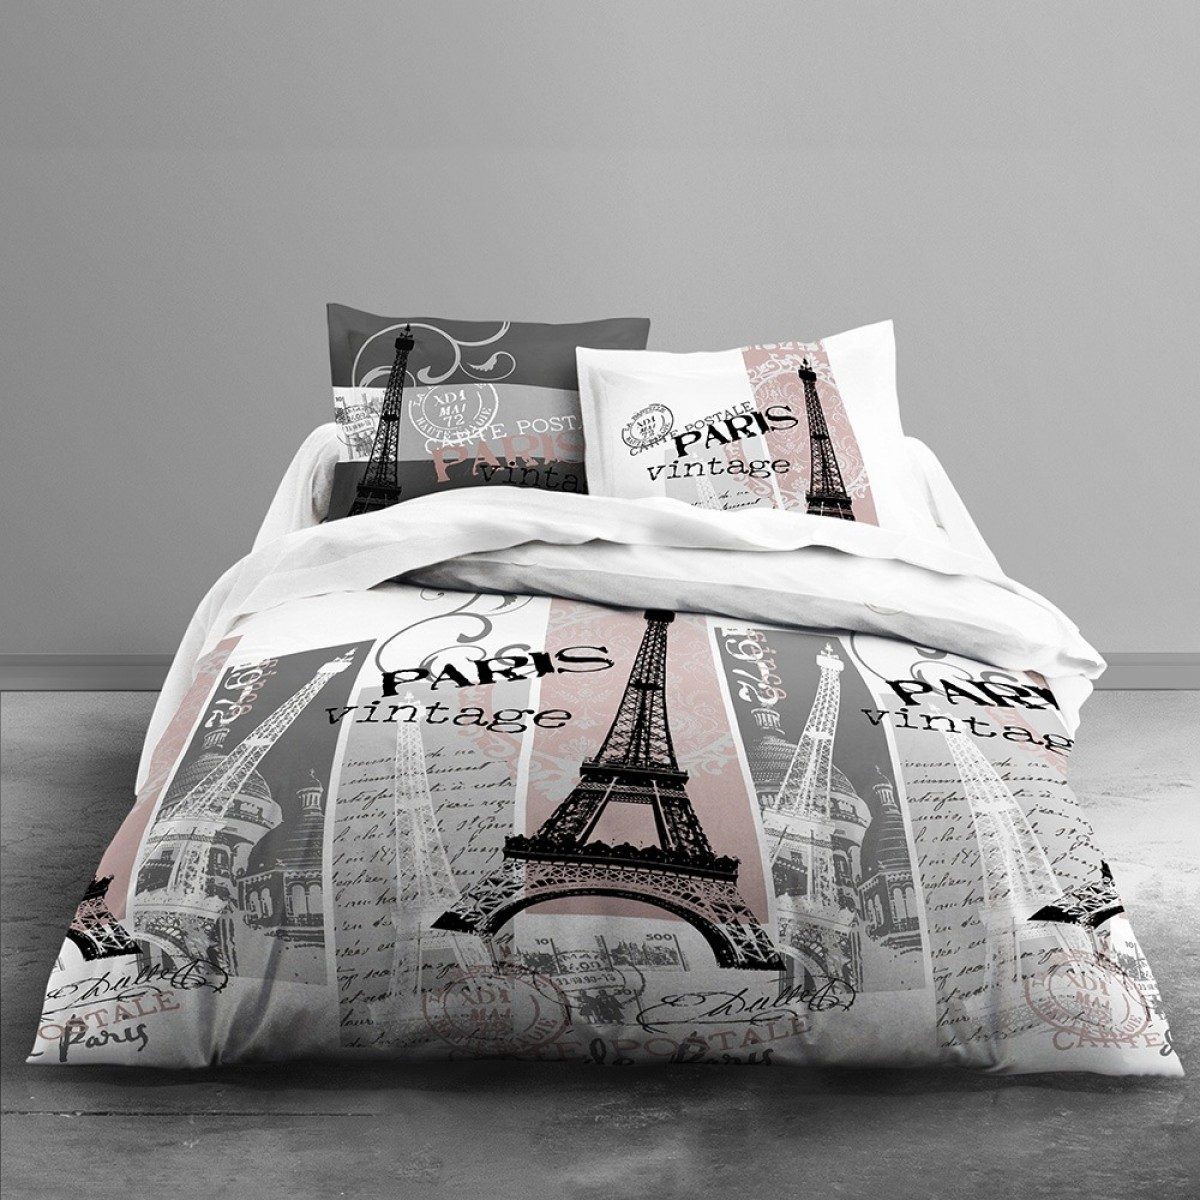 housse de couette vintage paris today 240 x 260 cm avec. Black Bedroom Furniture Sets. Home Design Ideas